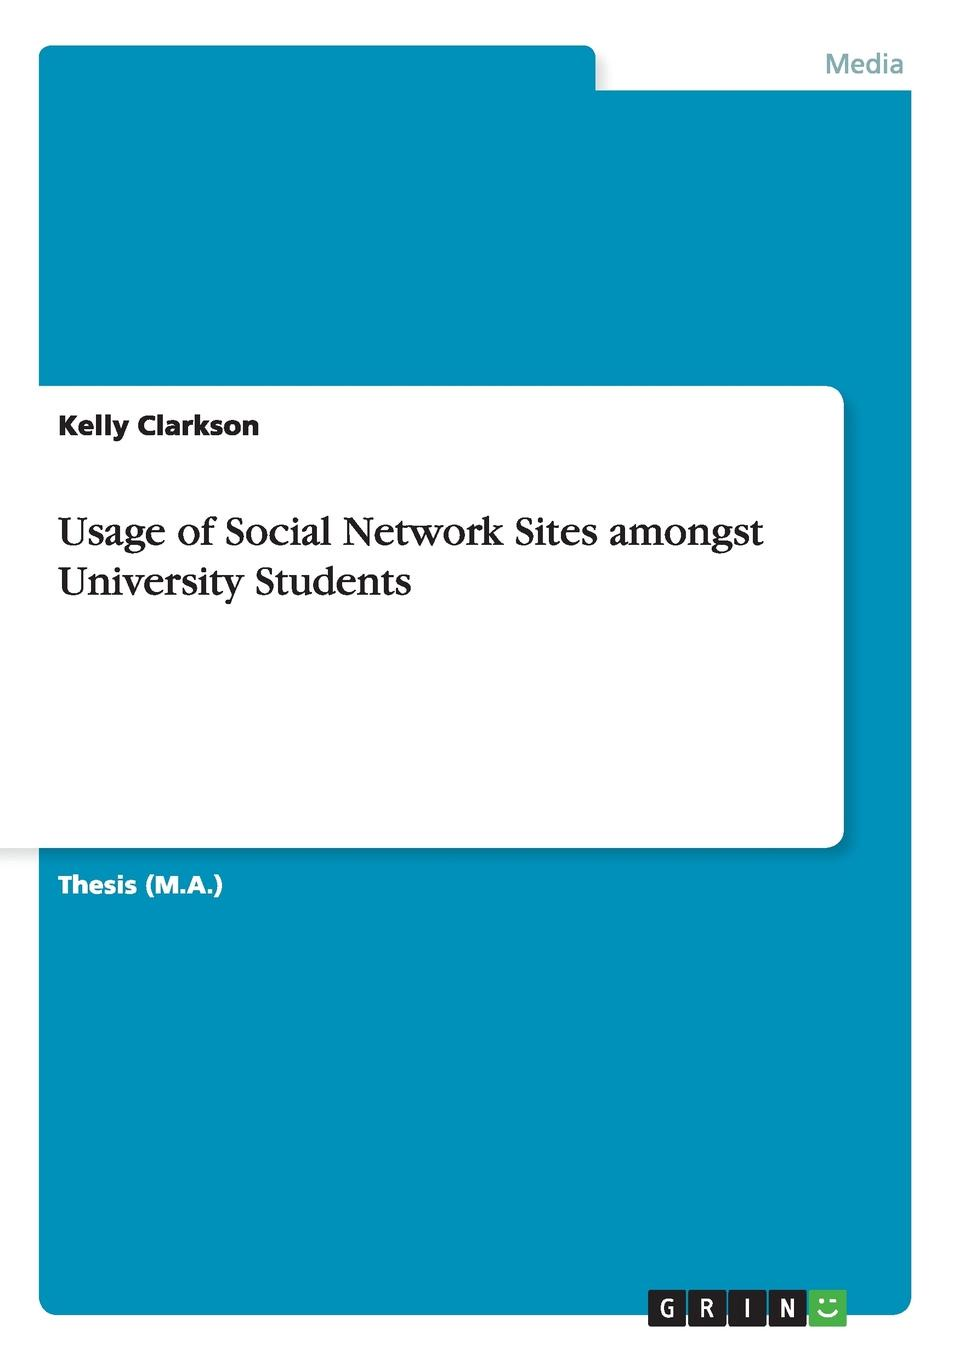 Kelly Clarkson Usage of Social Network Sites amongst University Students